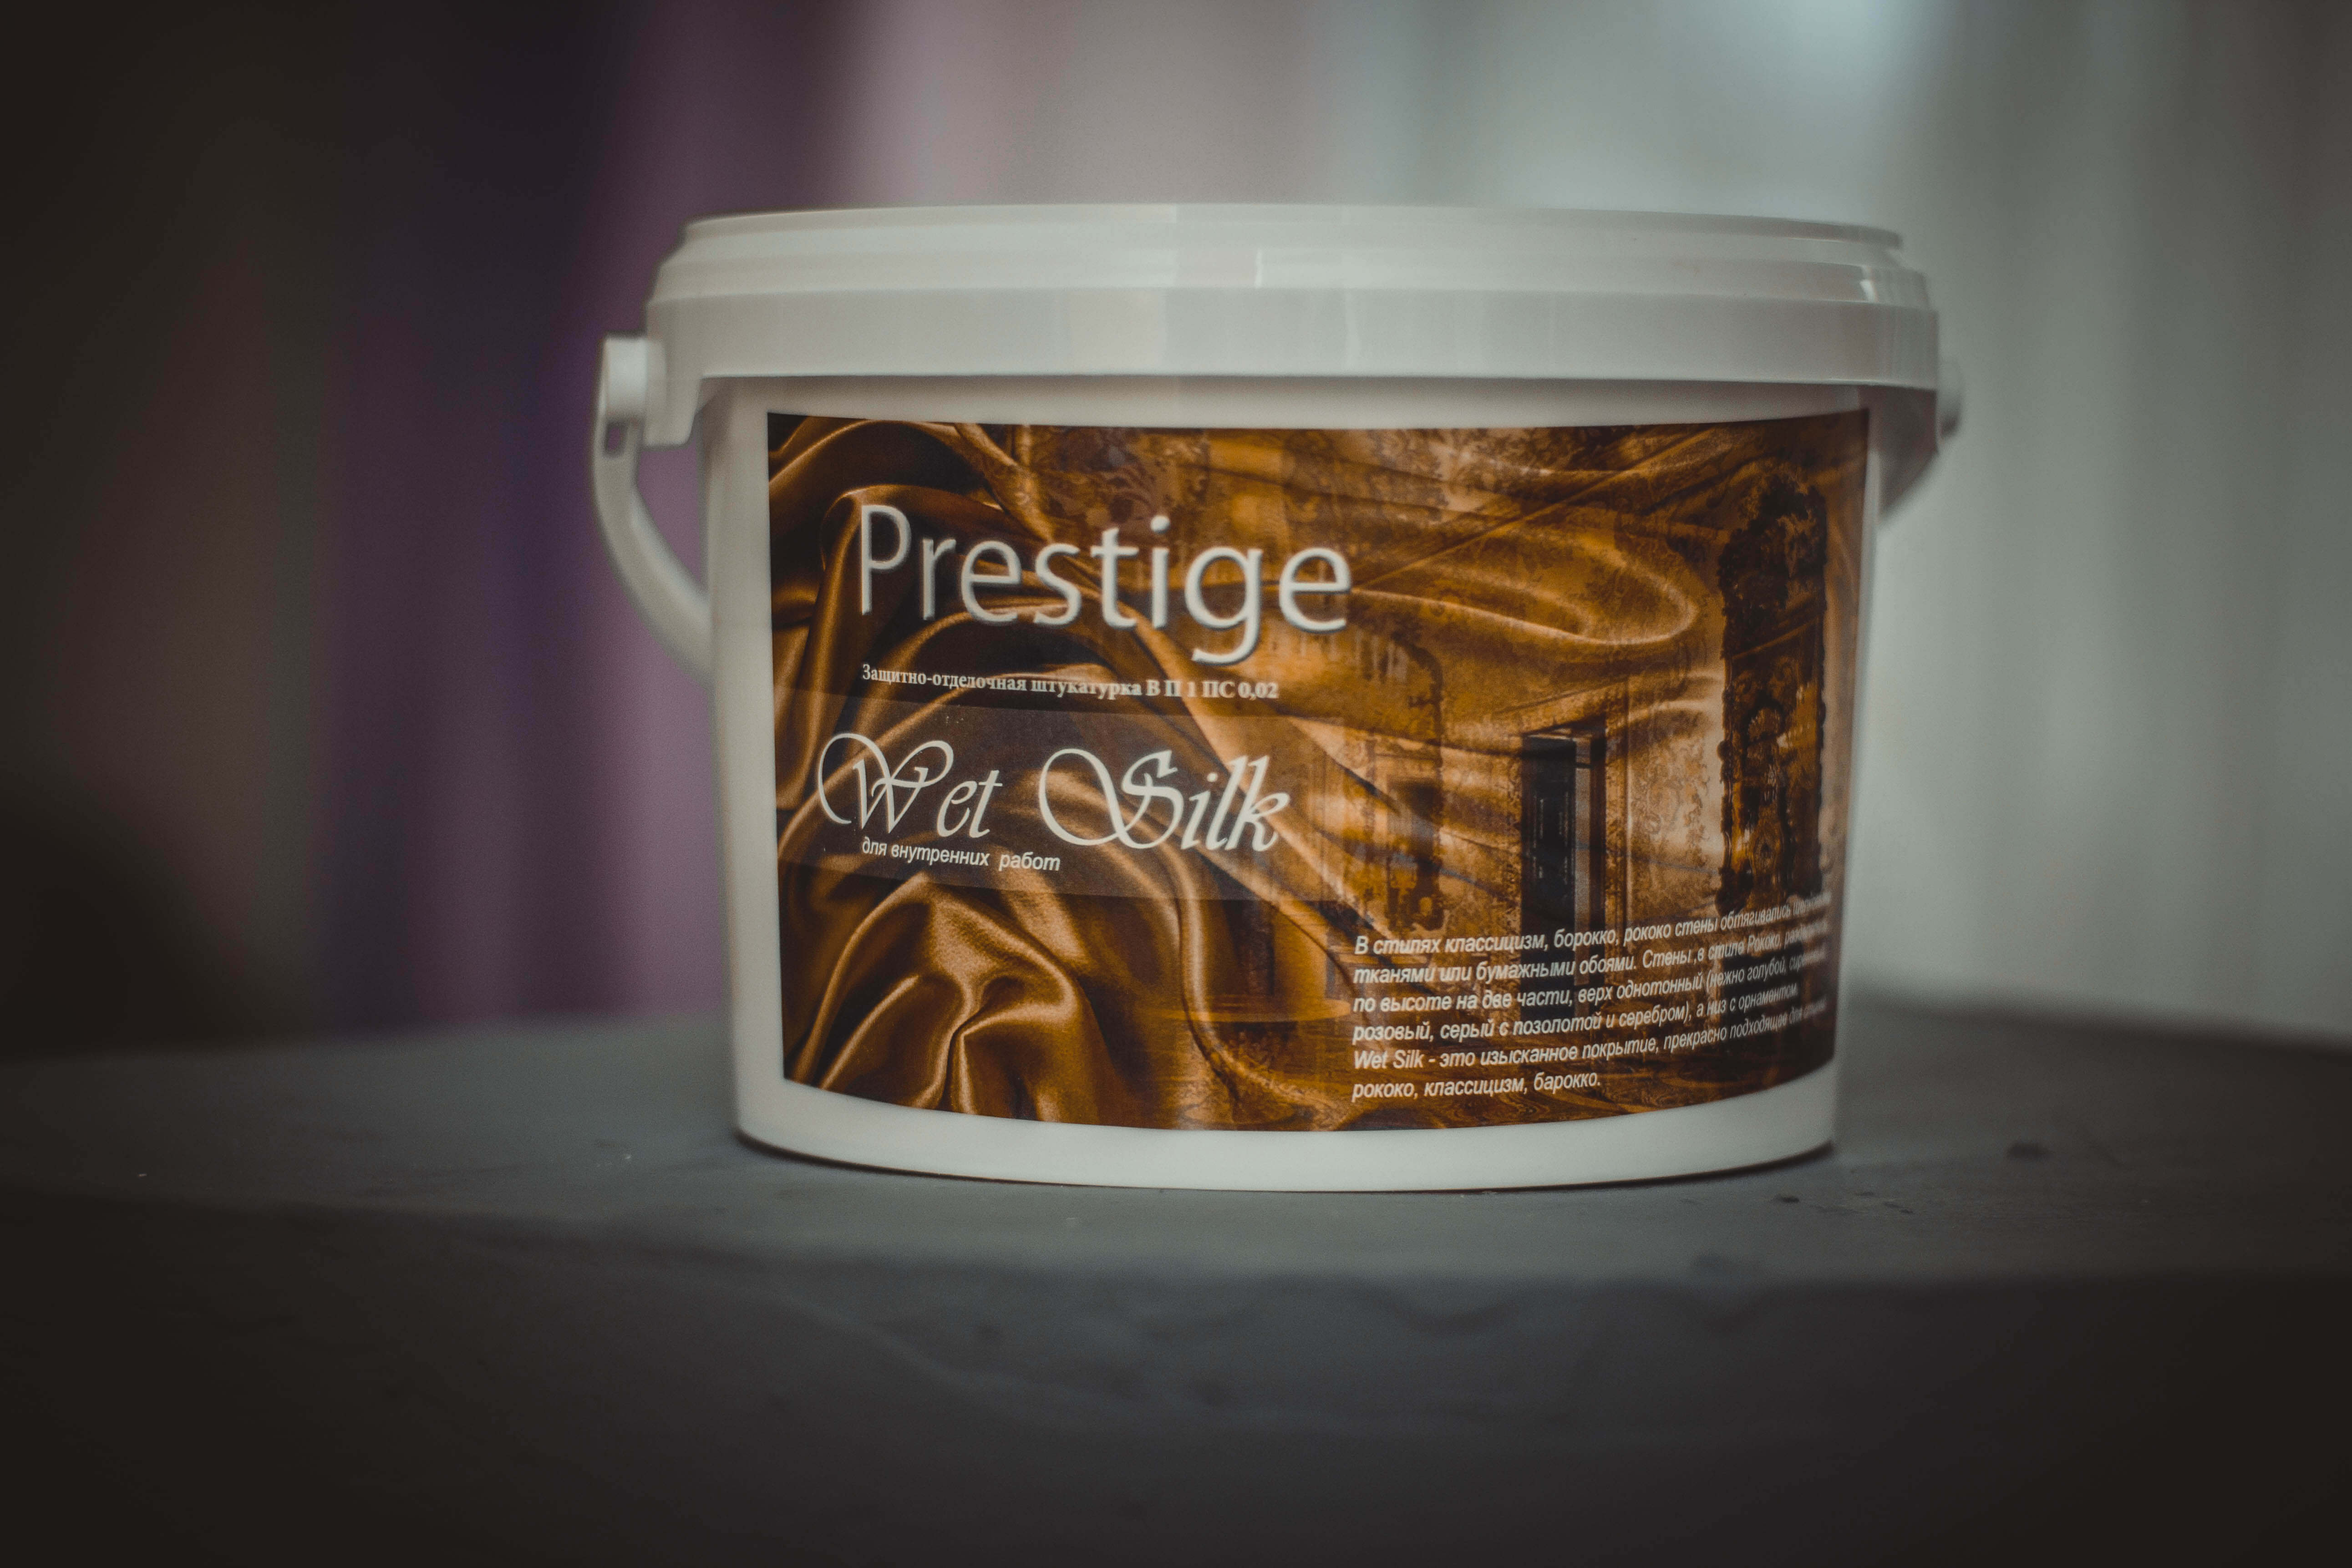 Prestige Wet Silk Bronze - Фото 2